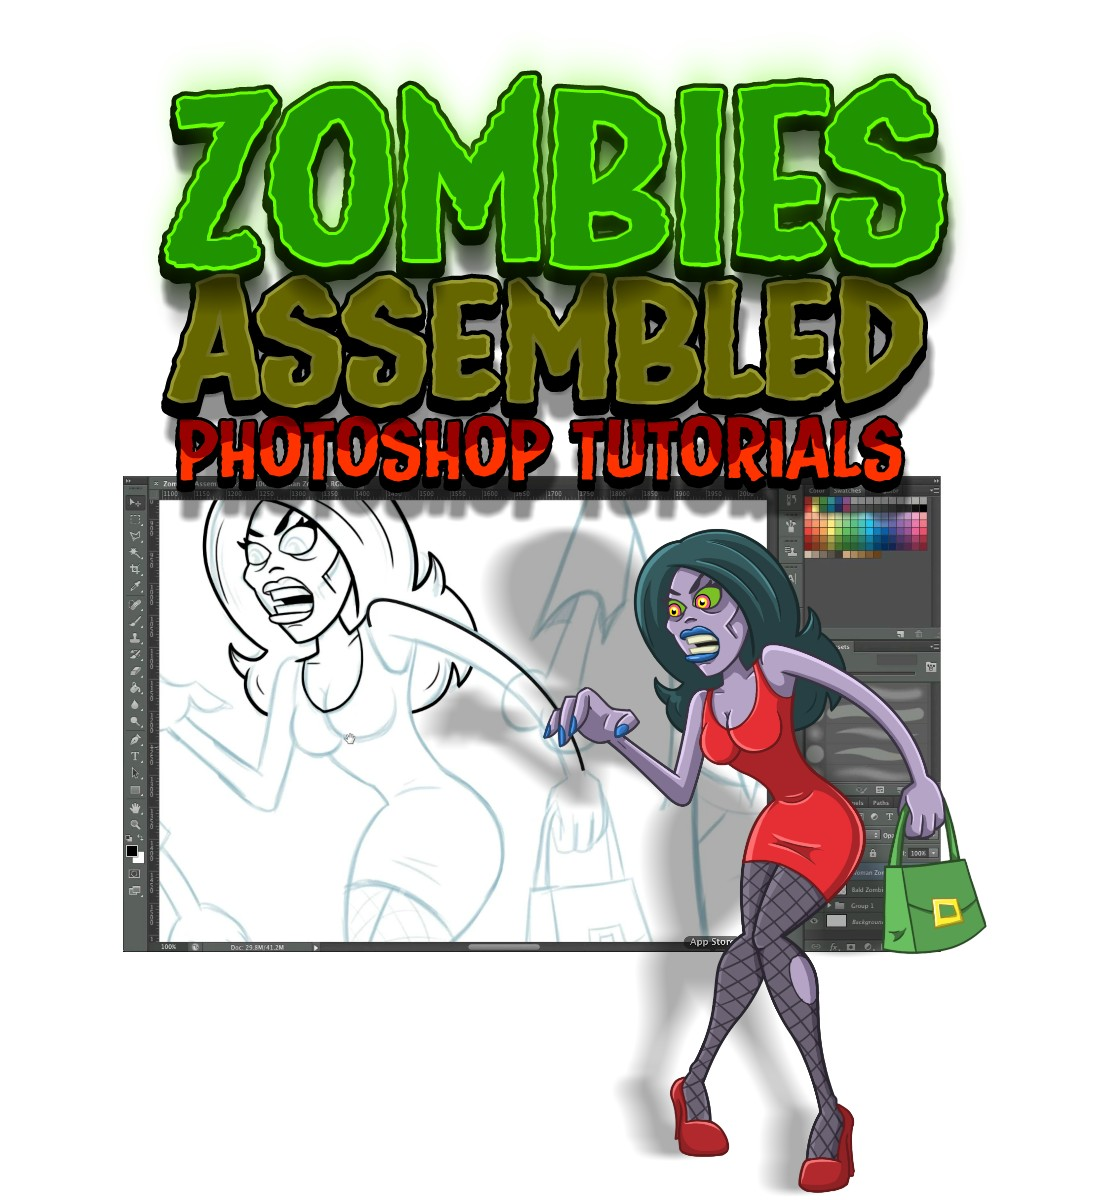 Course Details for How to Draw Zombies Photoshop Tutorial